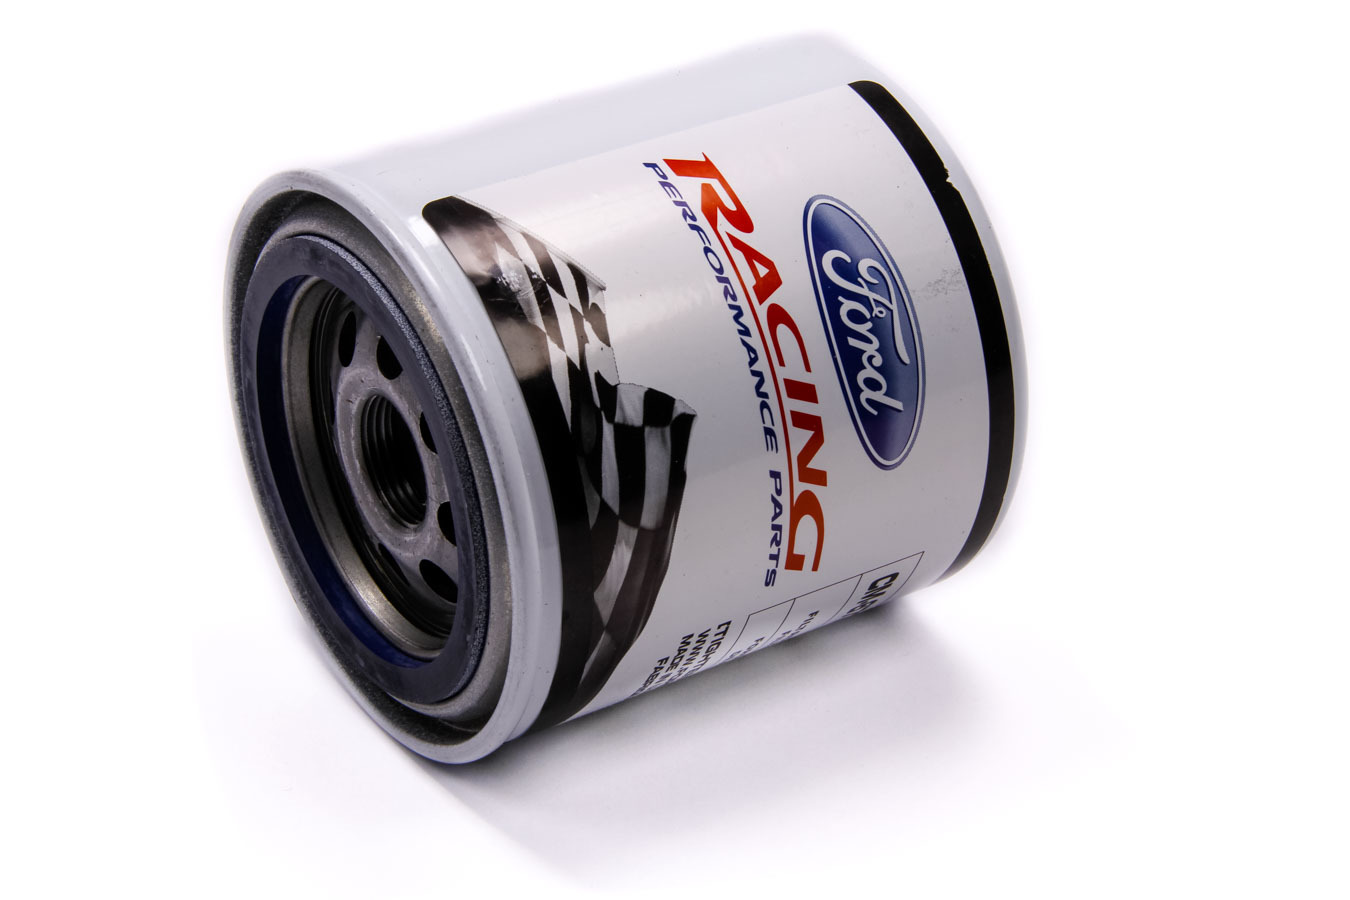 Ford CM6731-FL820 Oil Filter, High Performance, Canister, Screw-On, 22 mm x 1.50 Thread, Steel, White, Ford, Each